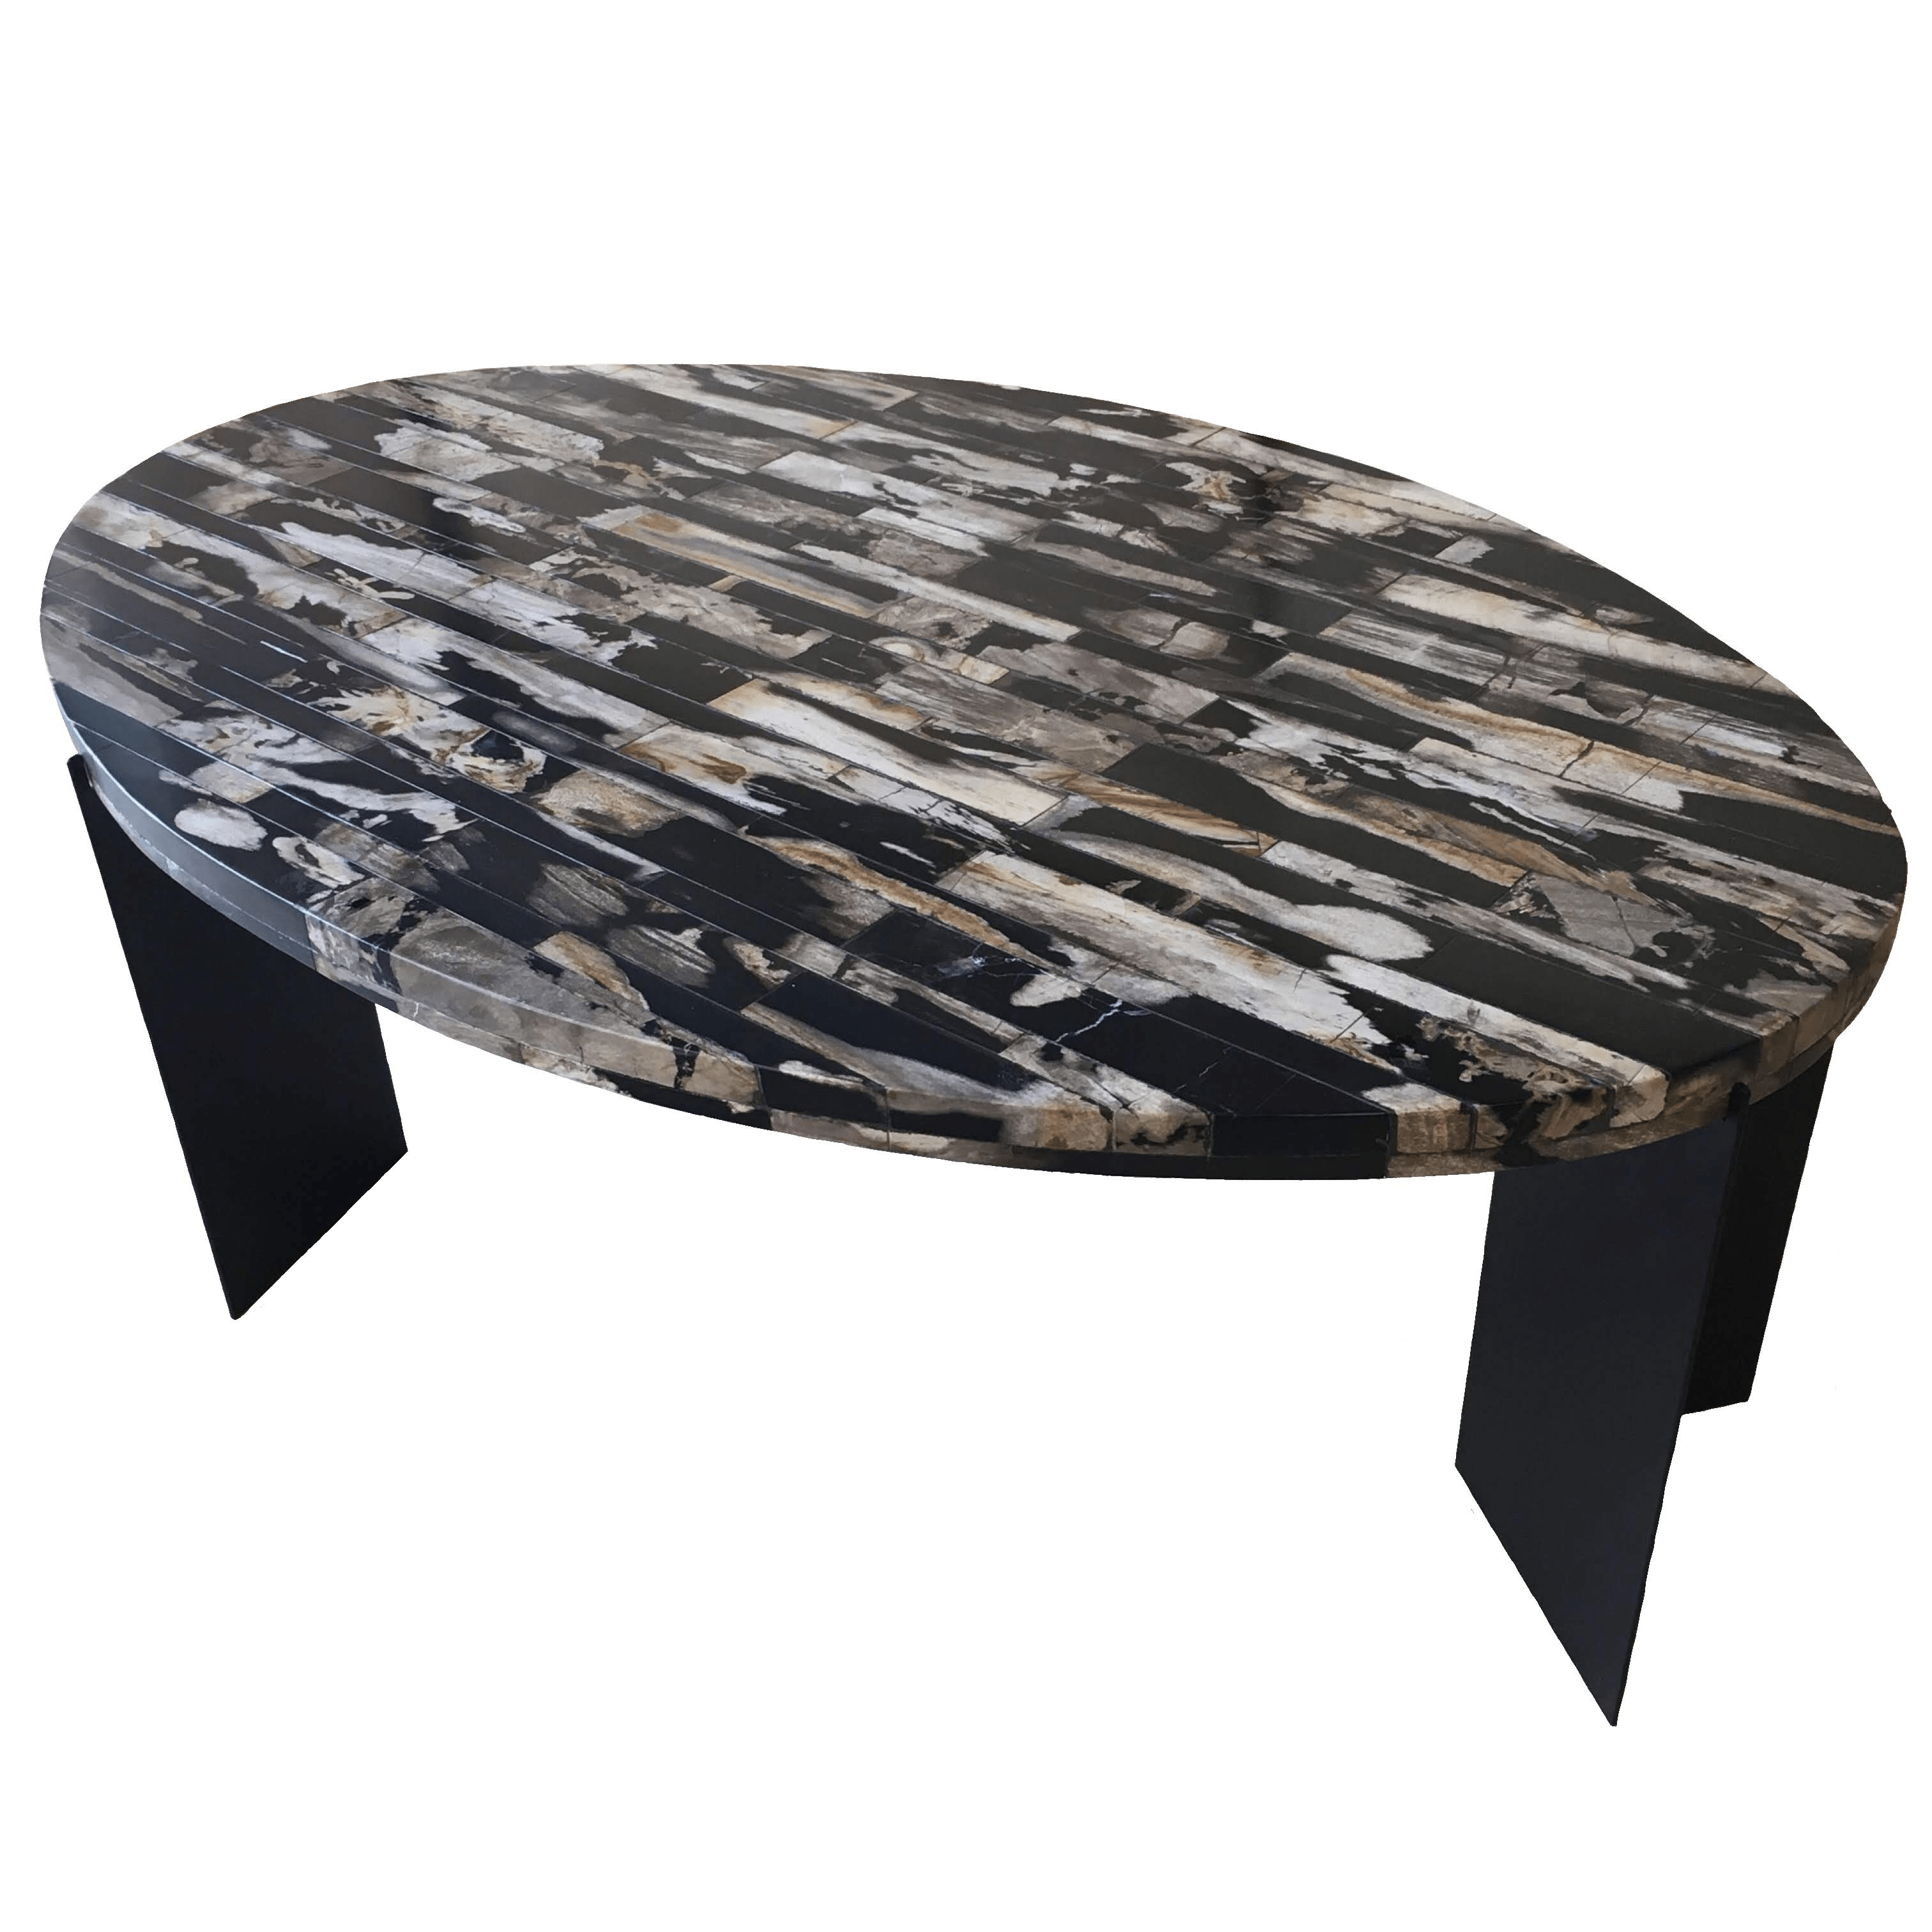 Petrified wood mosaic surface on coffee table legs